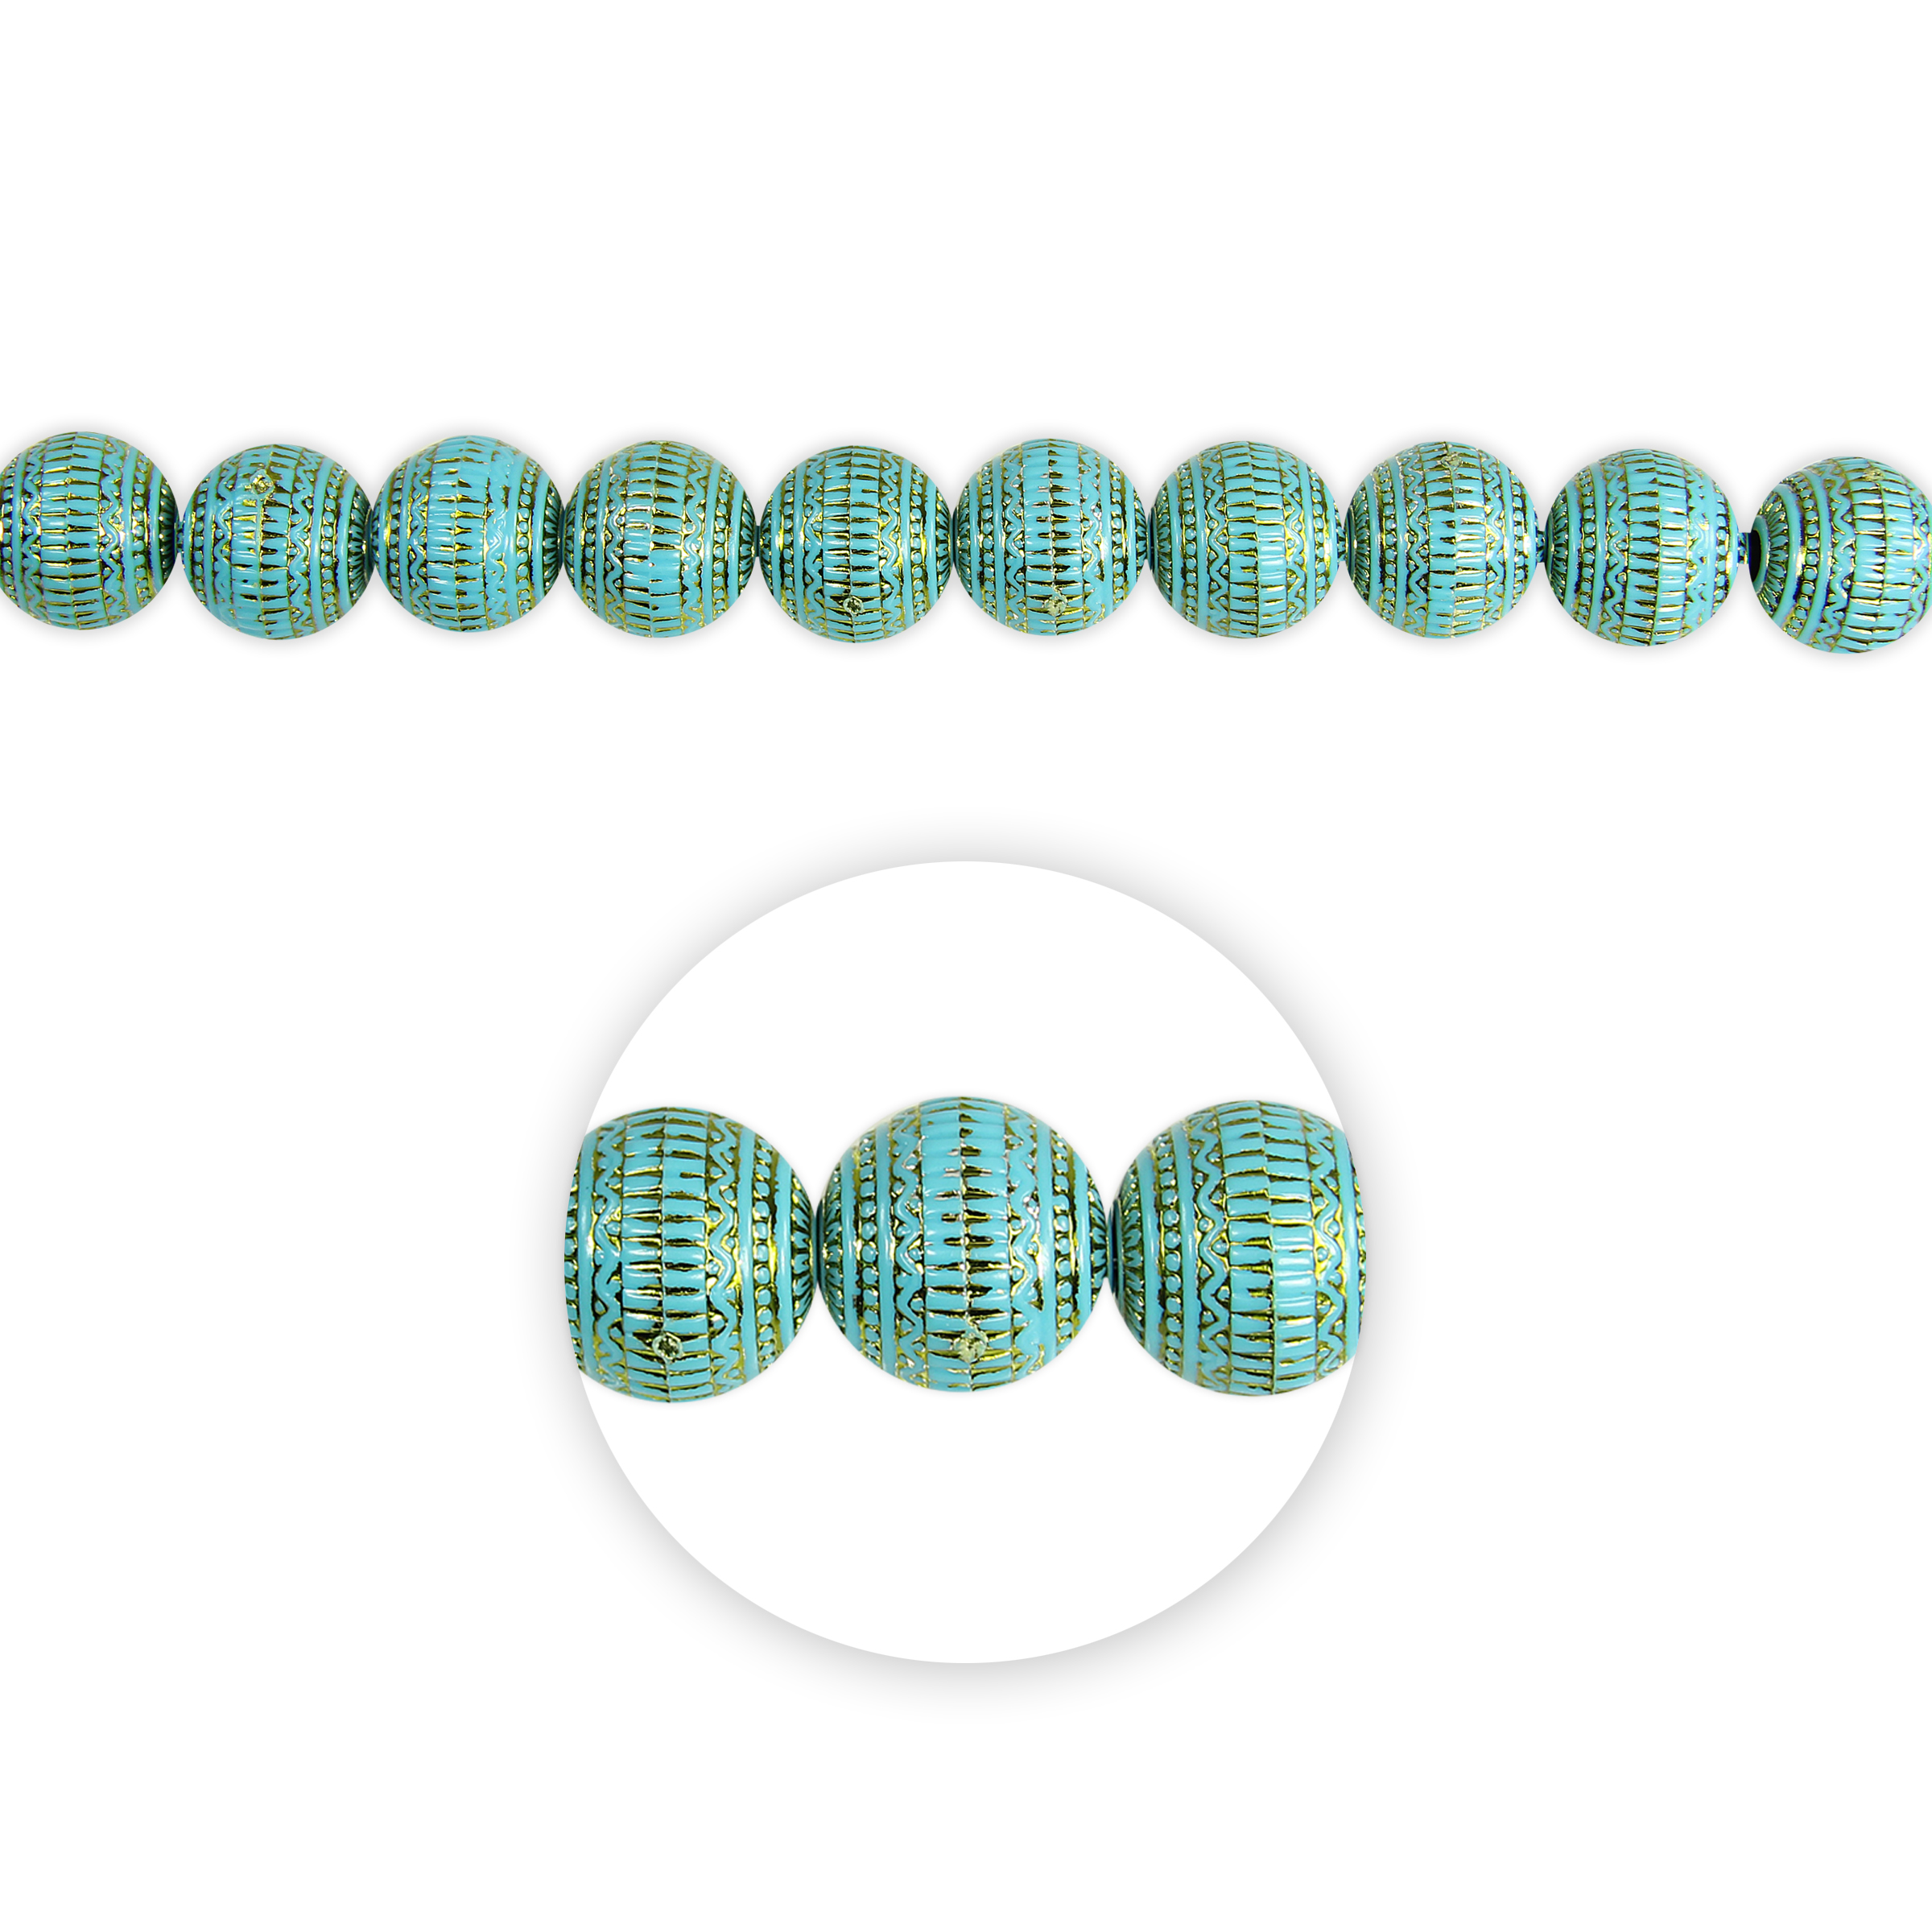 Blue Moon Beads Strand 7\u0022 Plastic Round, Turquoise/Gold, Carved